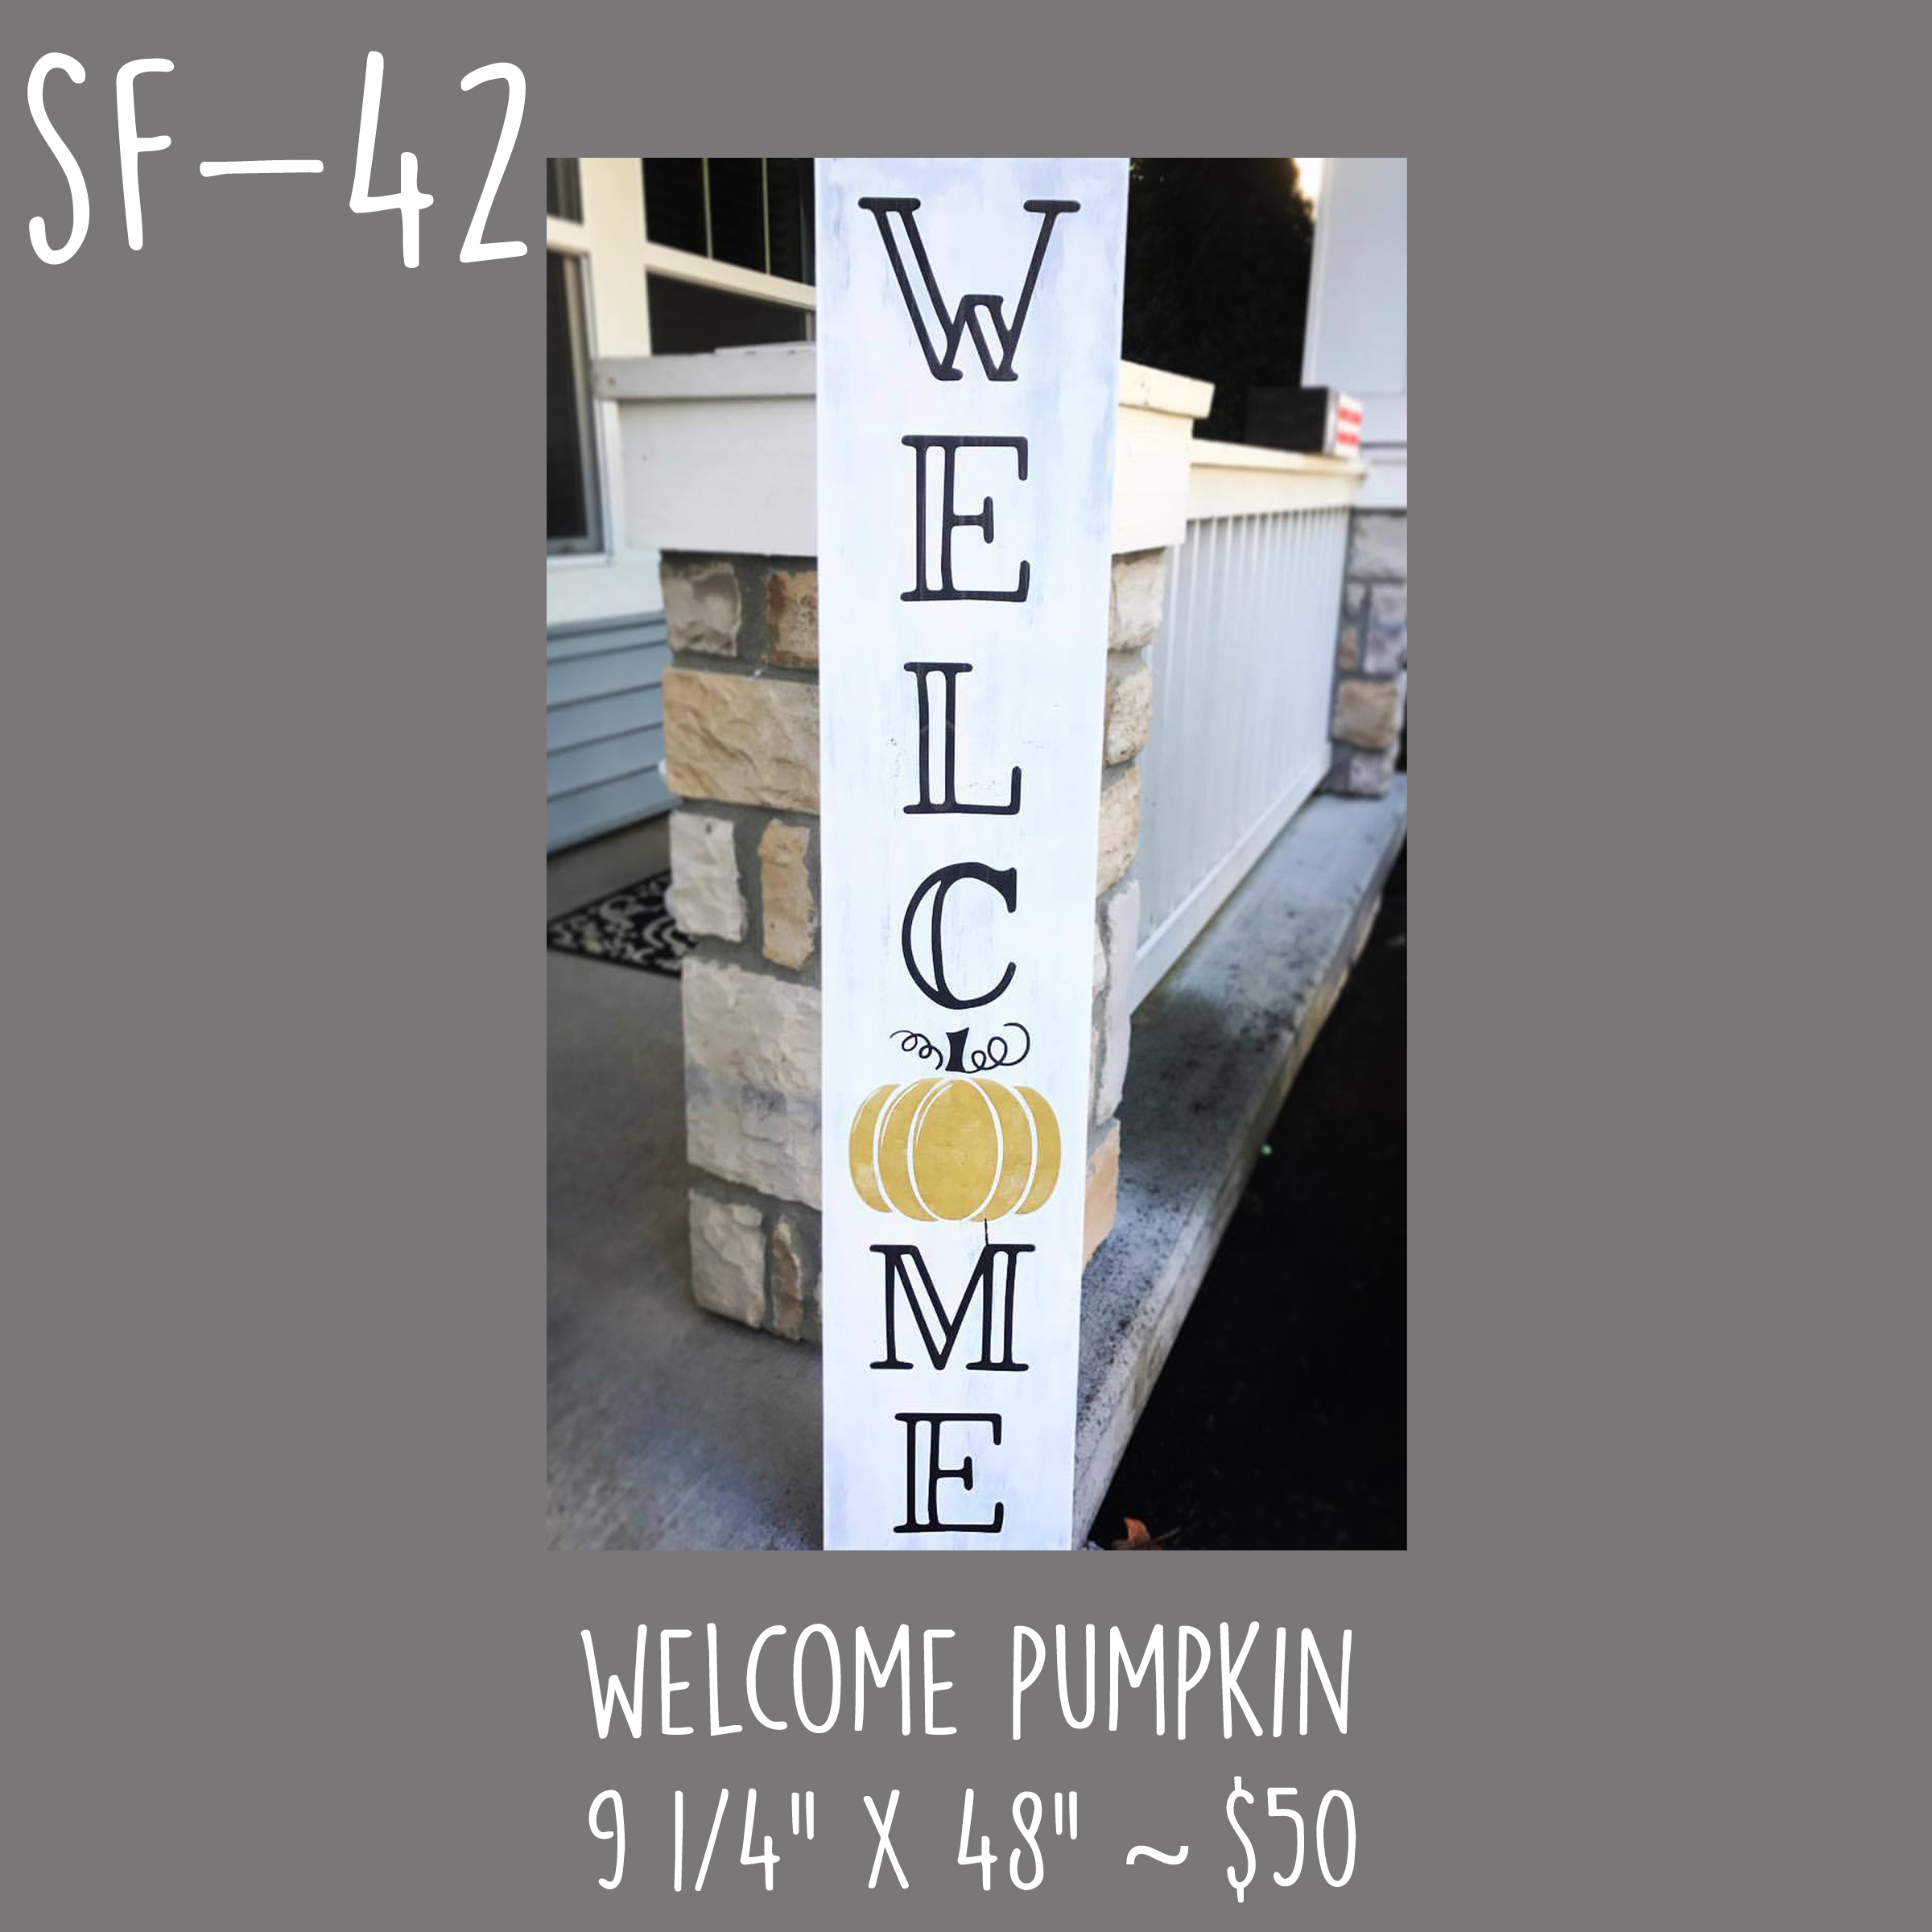 SF42 - Welcome Pumpkin.jpg